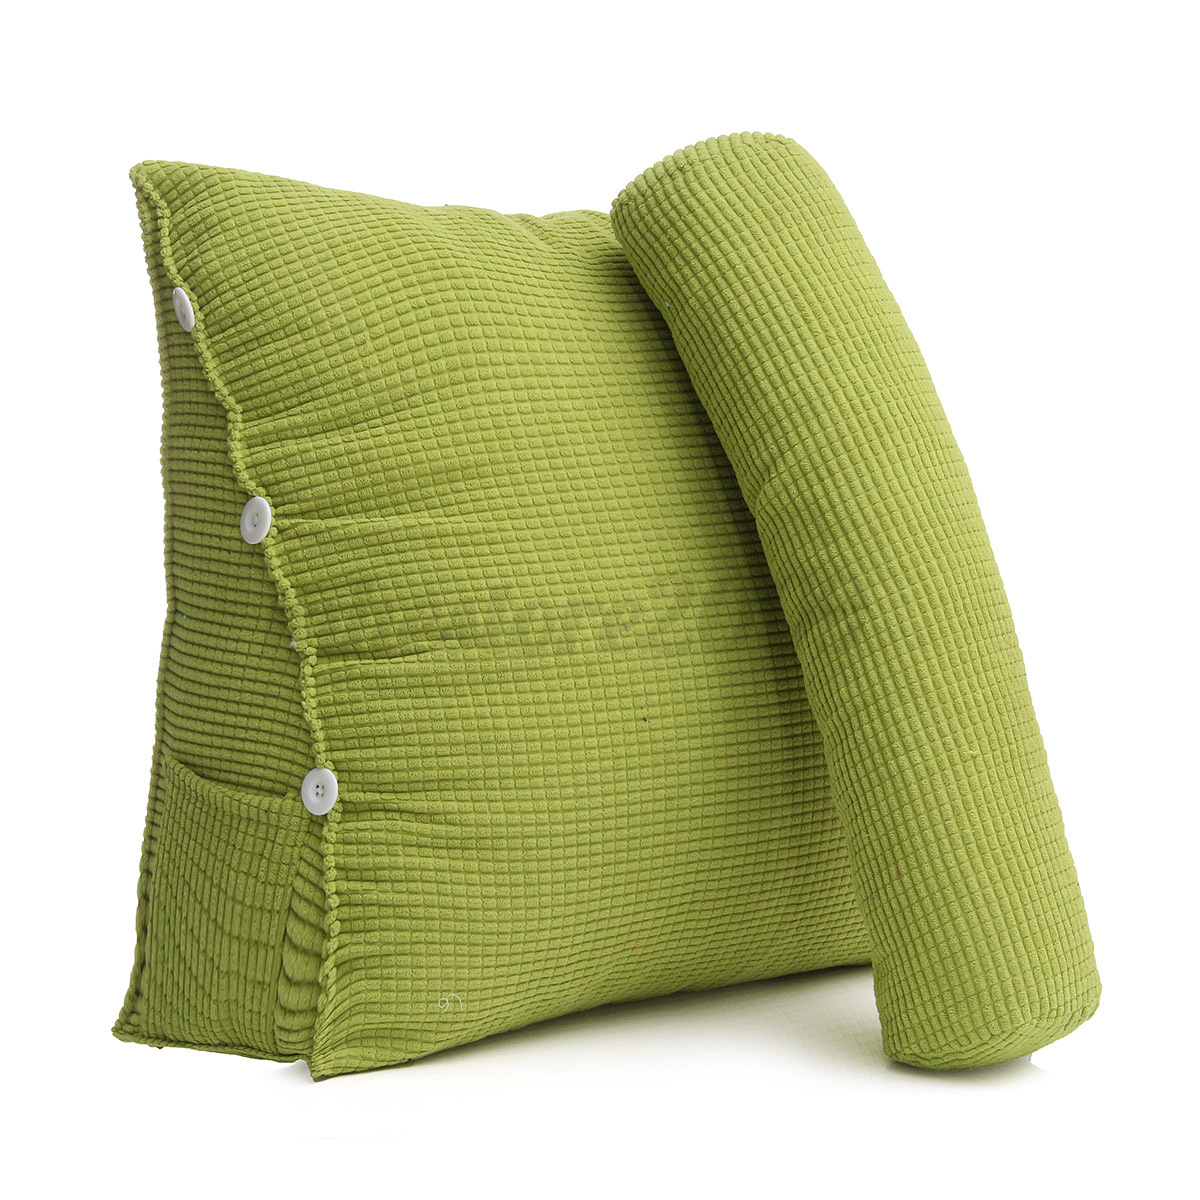 Bed Chair Pillow Adjustable Sofa Bed Chair Office Rest Neck Support Back